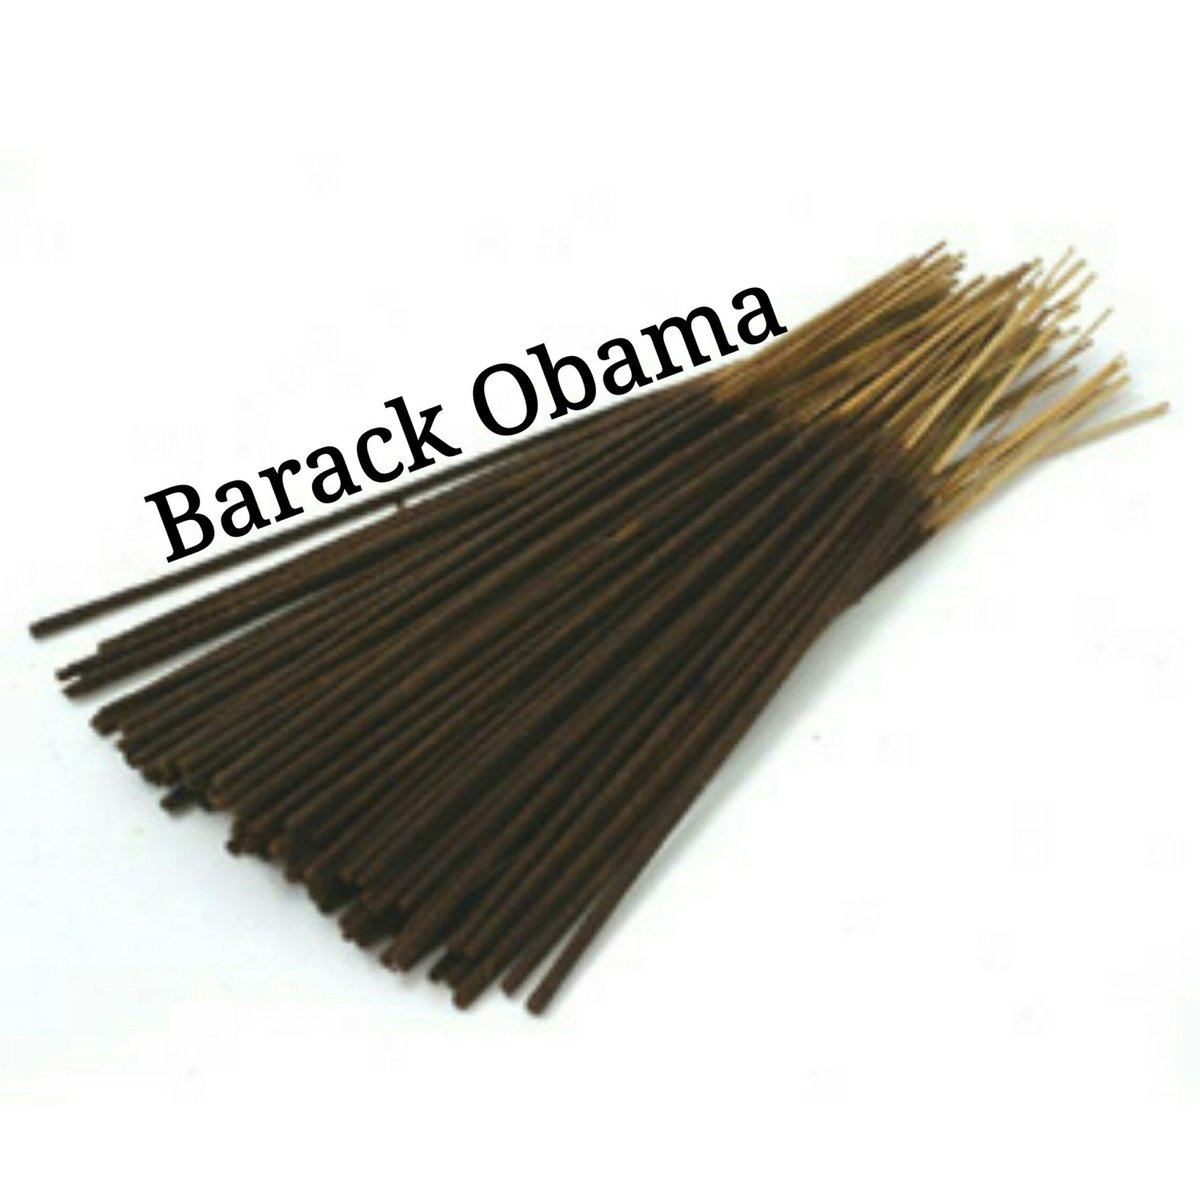 Incense Sticks | Barack Obama | 30 Incense Sticks | Incense Bundle  #Incense #GiftShopSale #CyberMonday #Wedding #PerfumeBodyOils #AromatherapyOil #BlackFriday #HomeFragranceOil #Etsy #HerbalRemedies #HandmadeIncense